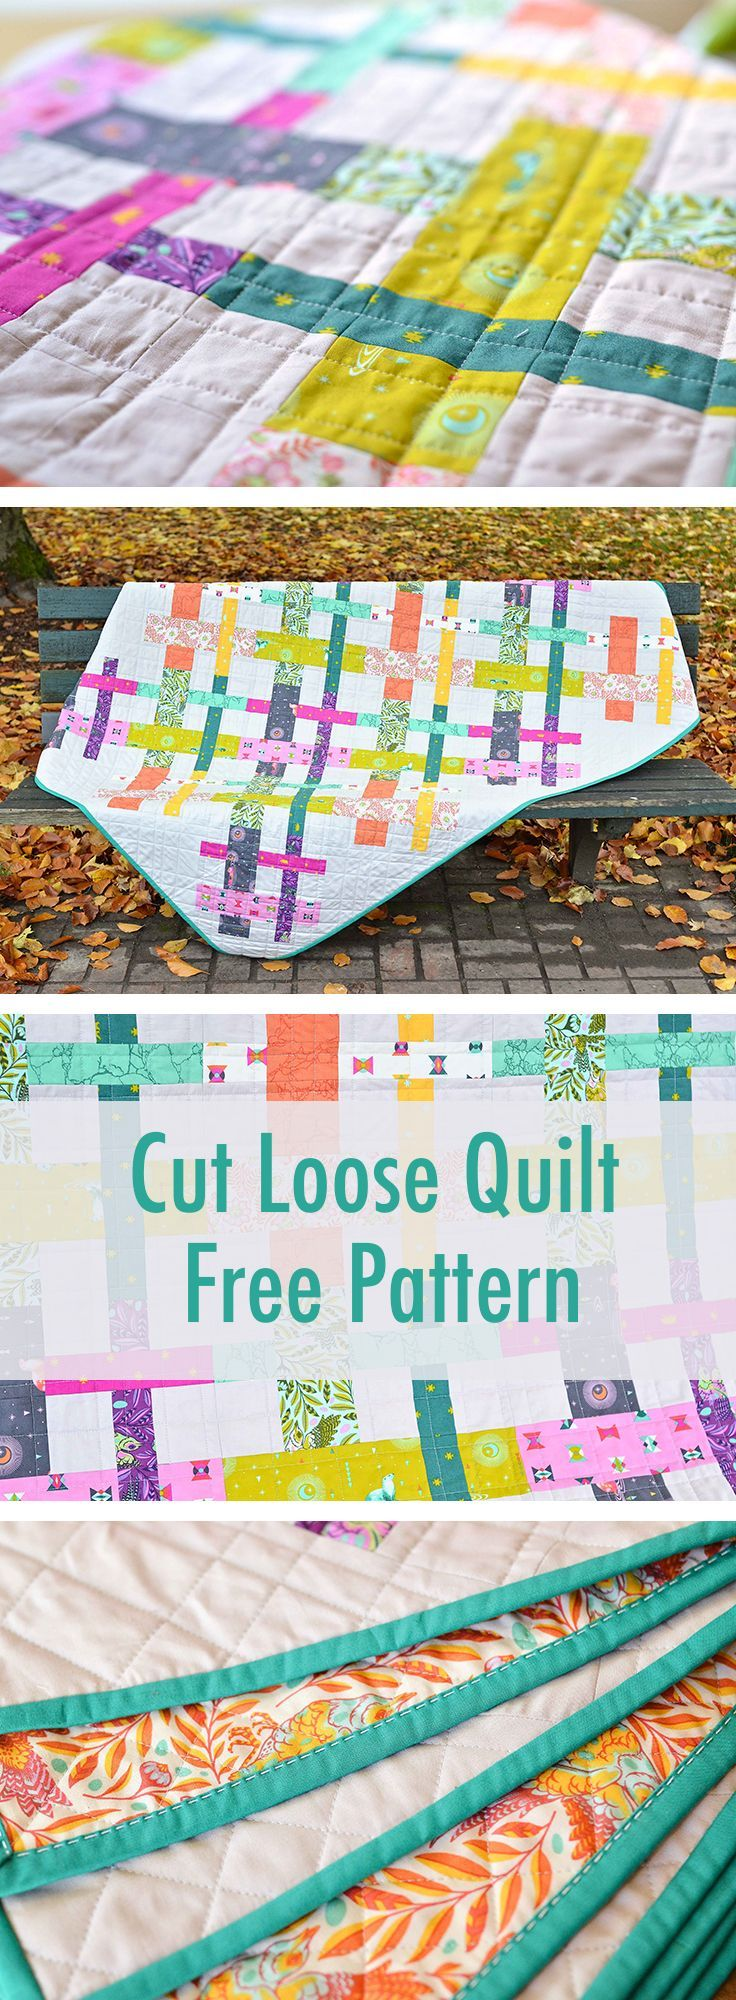 Cut Loose Tula Pink Quilt - made with 12 fat quarters & 3.5 yds background (could I use scrap bag strips?)